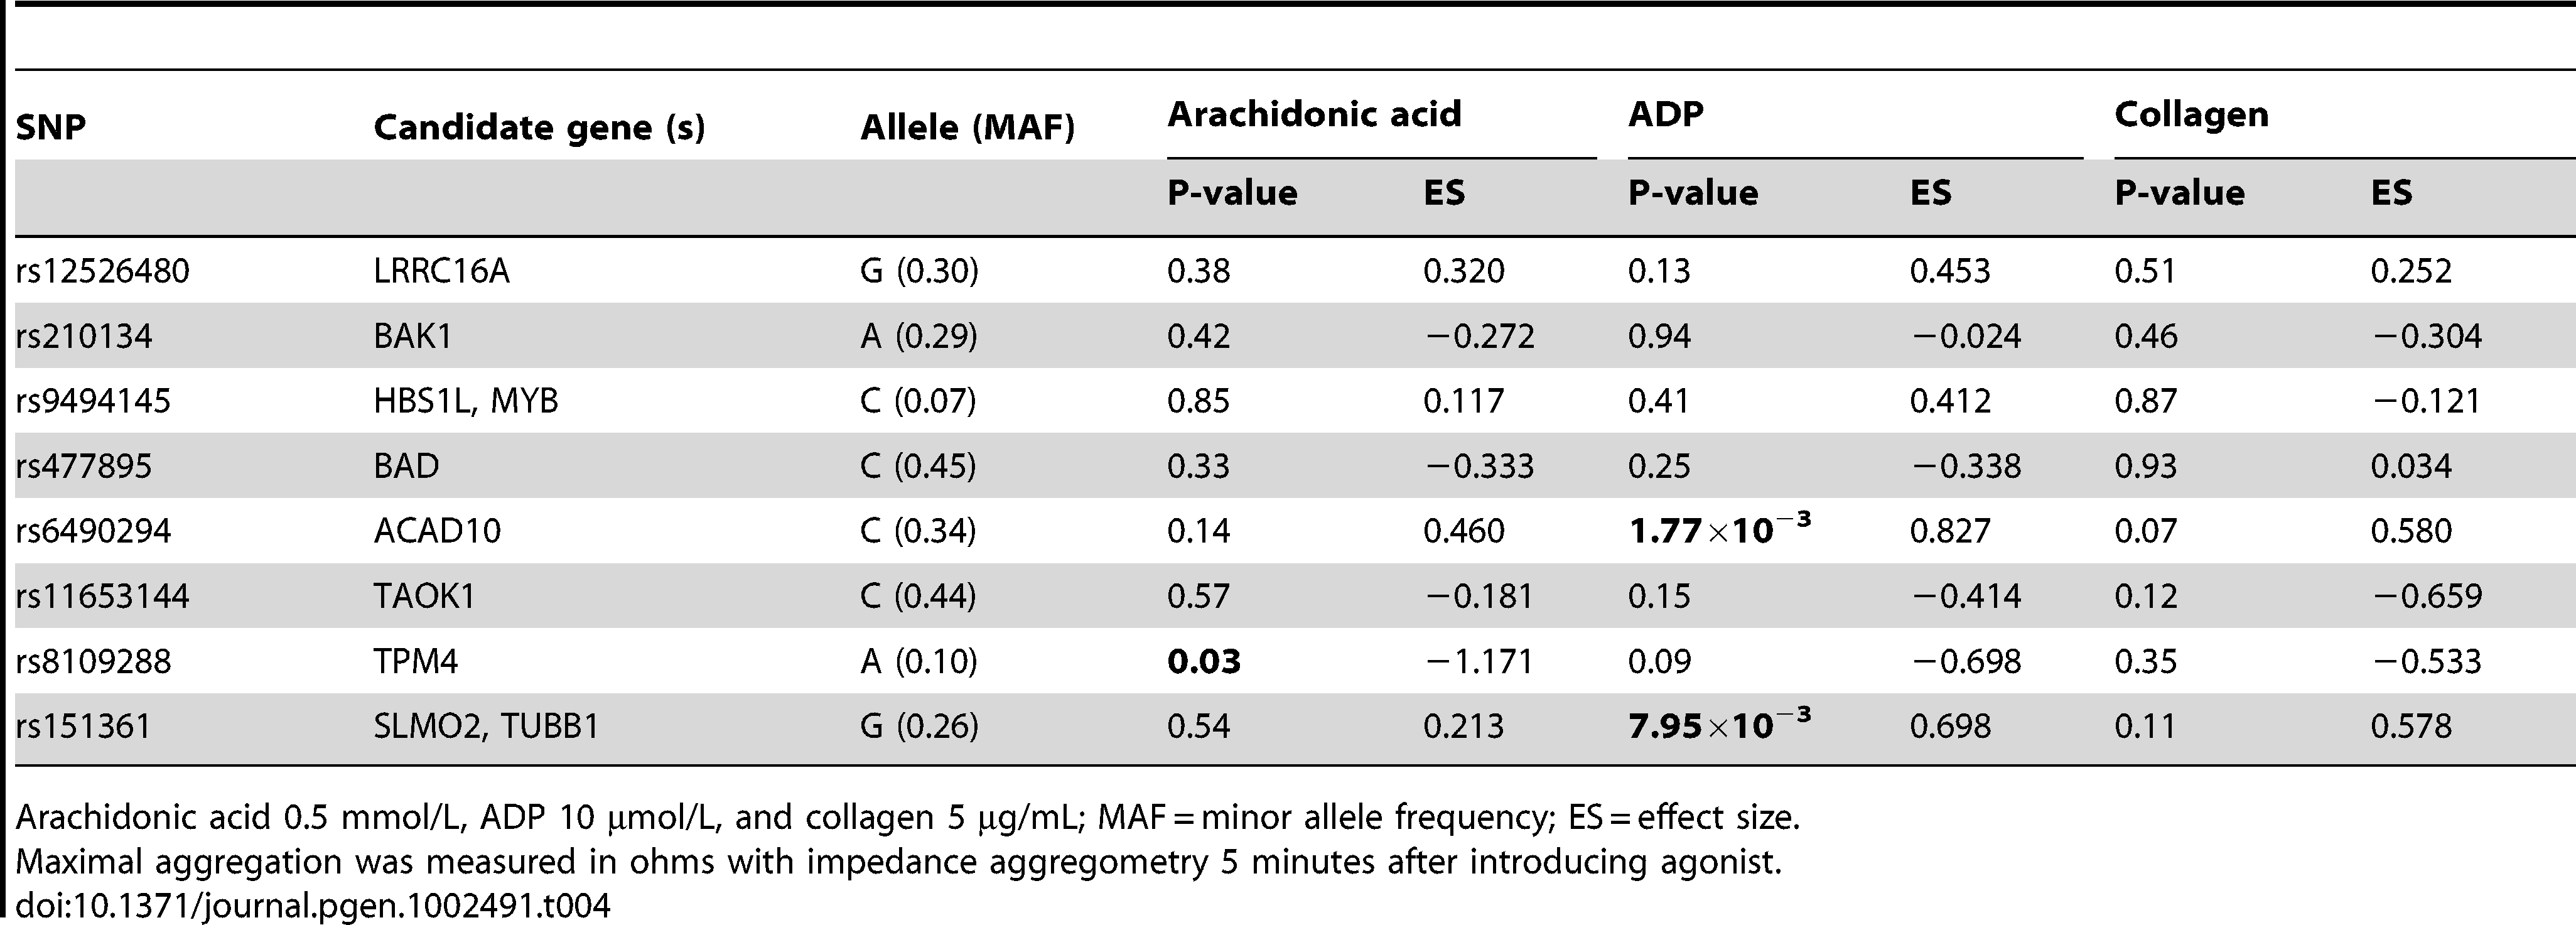 Association of the top SNP from each locus with agonist-induced platelet aggregation in whole blood.